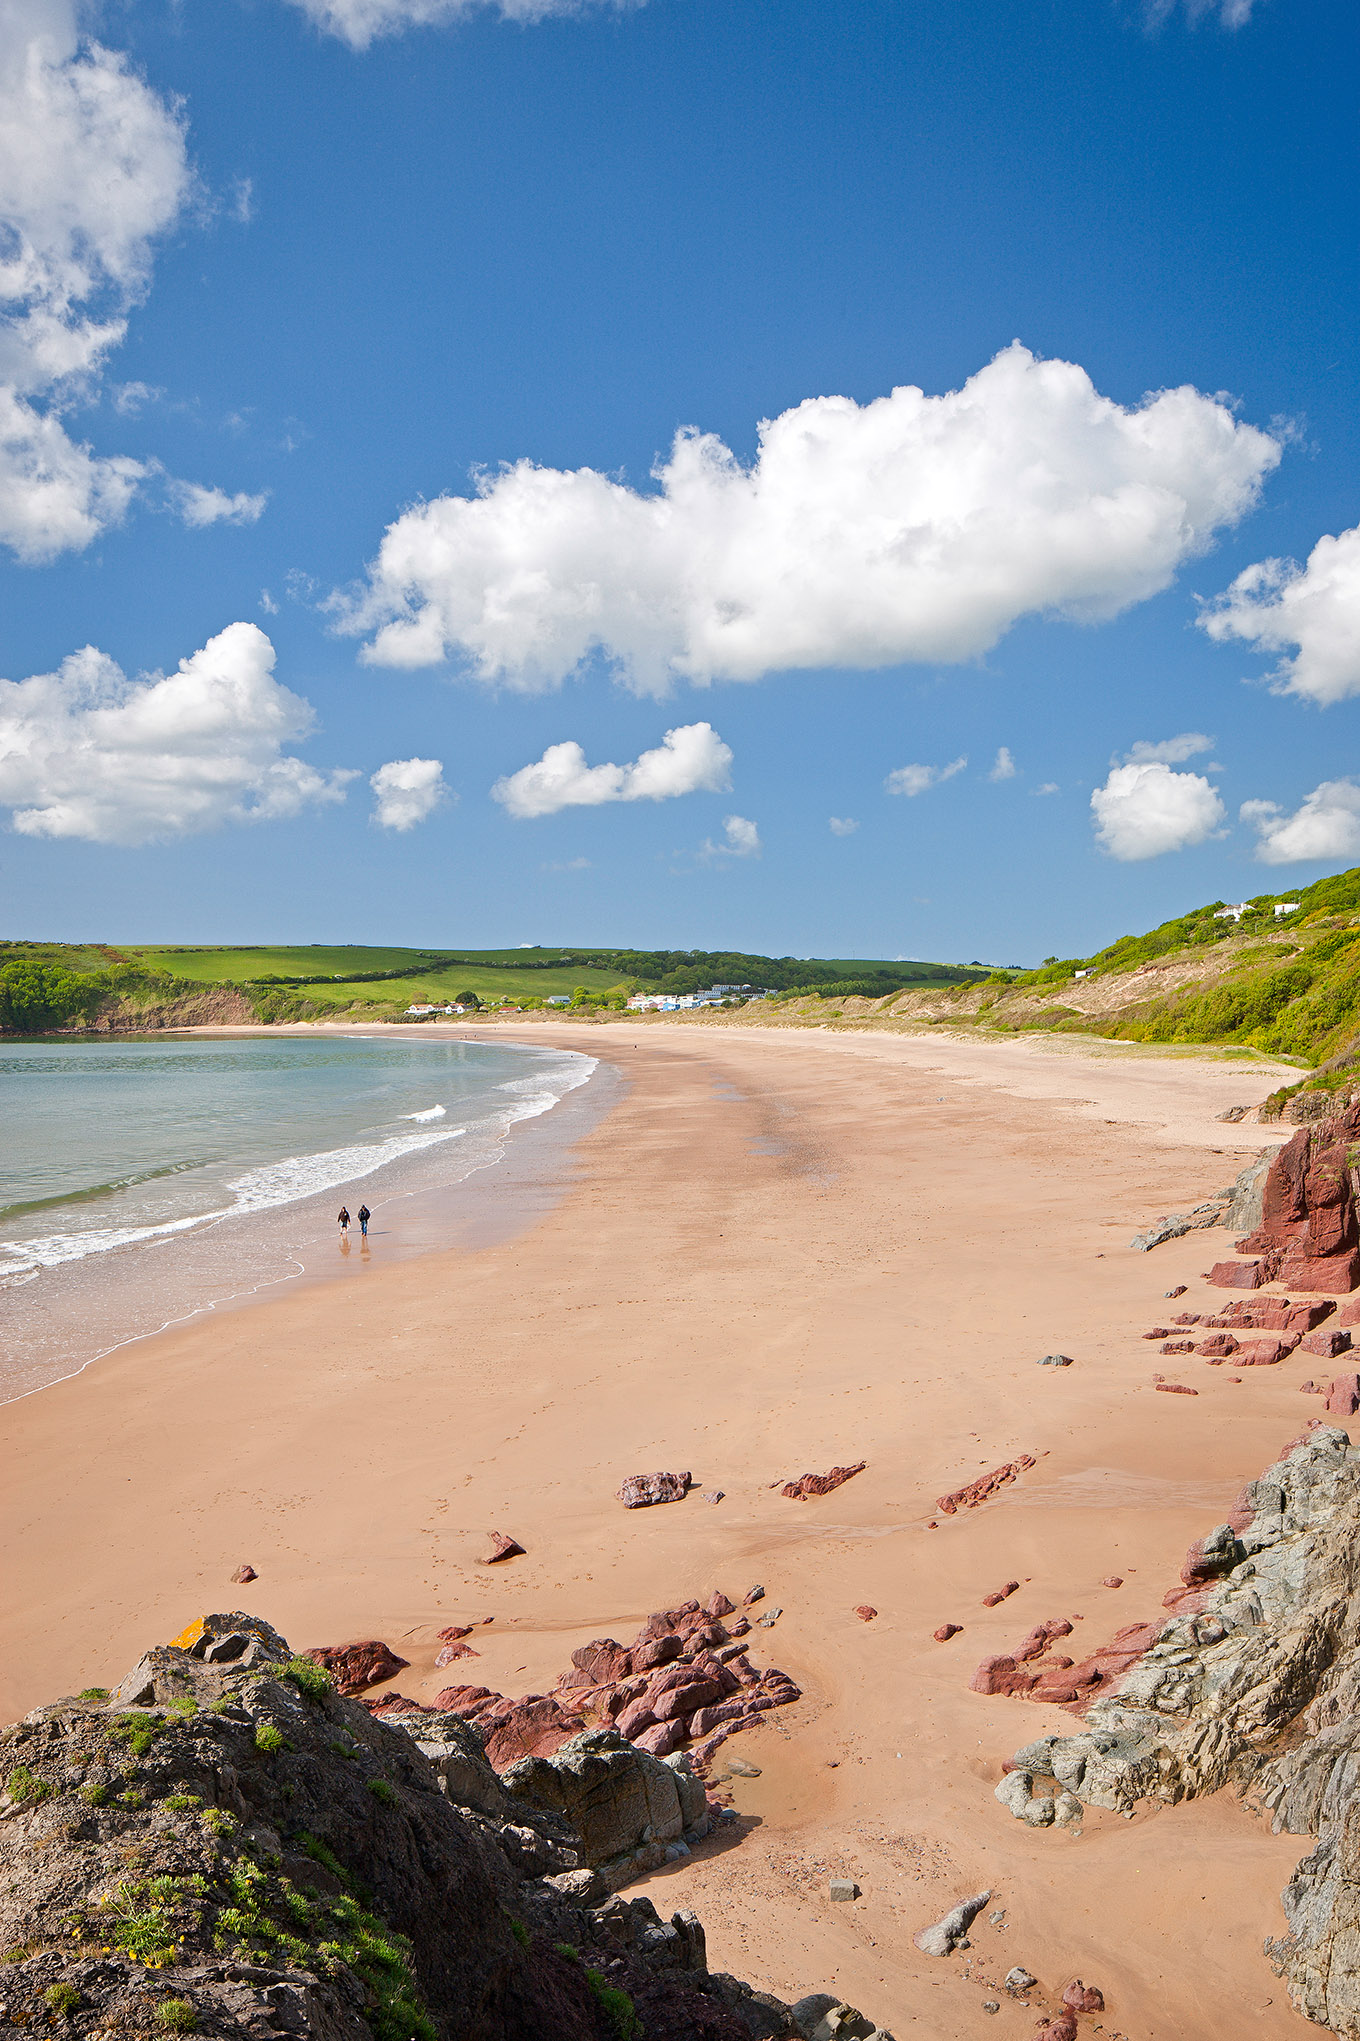 Freshwater East Beach in Pembrokeshire, South West Wales